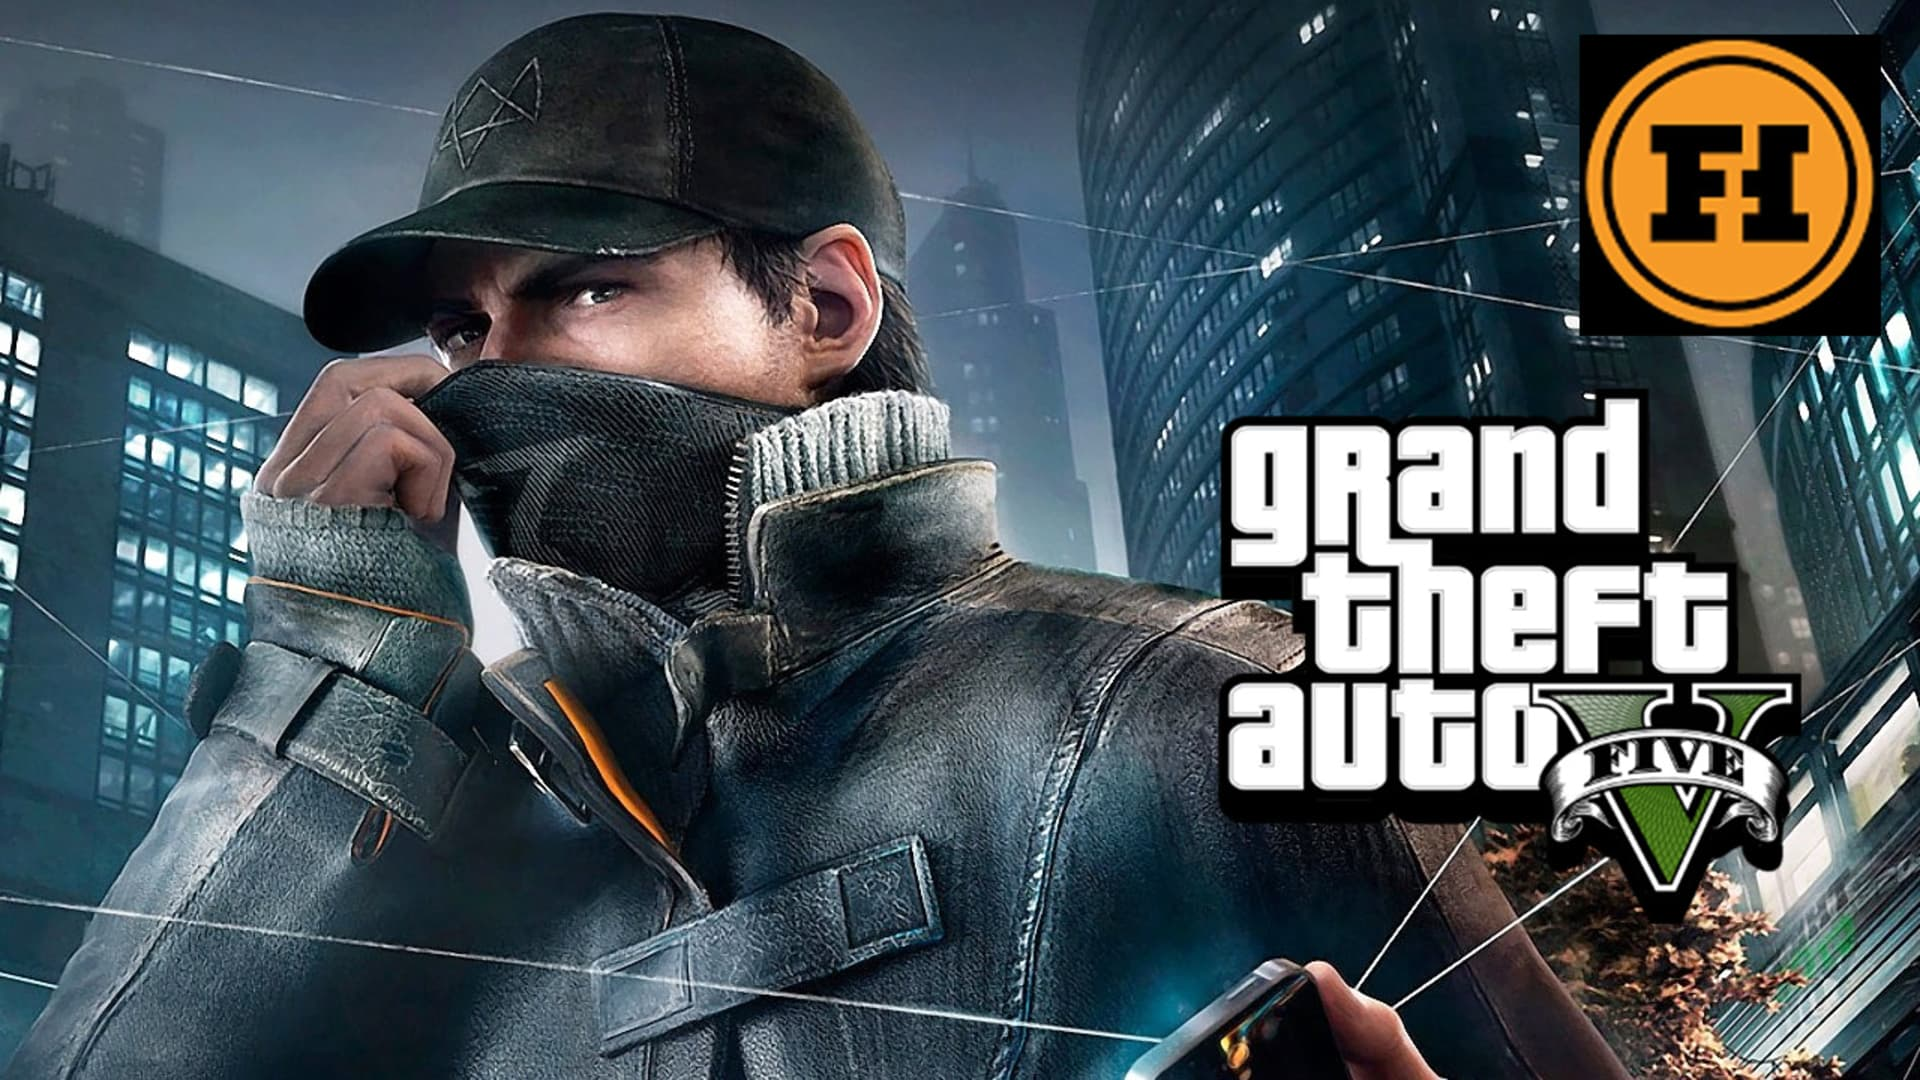 Watch Dogs In Gta 5 Mod Gameplay Rooster Teeth